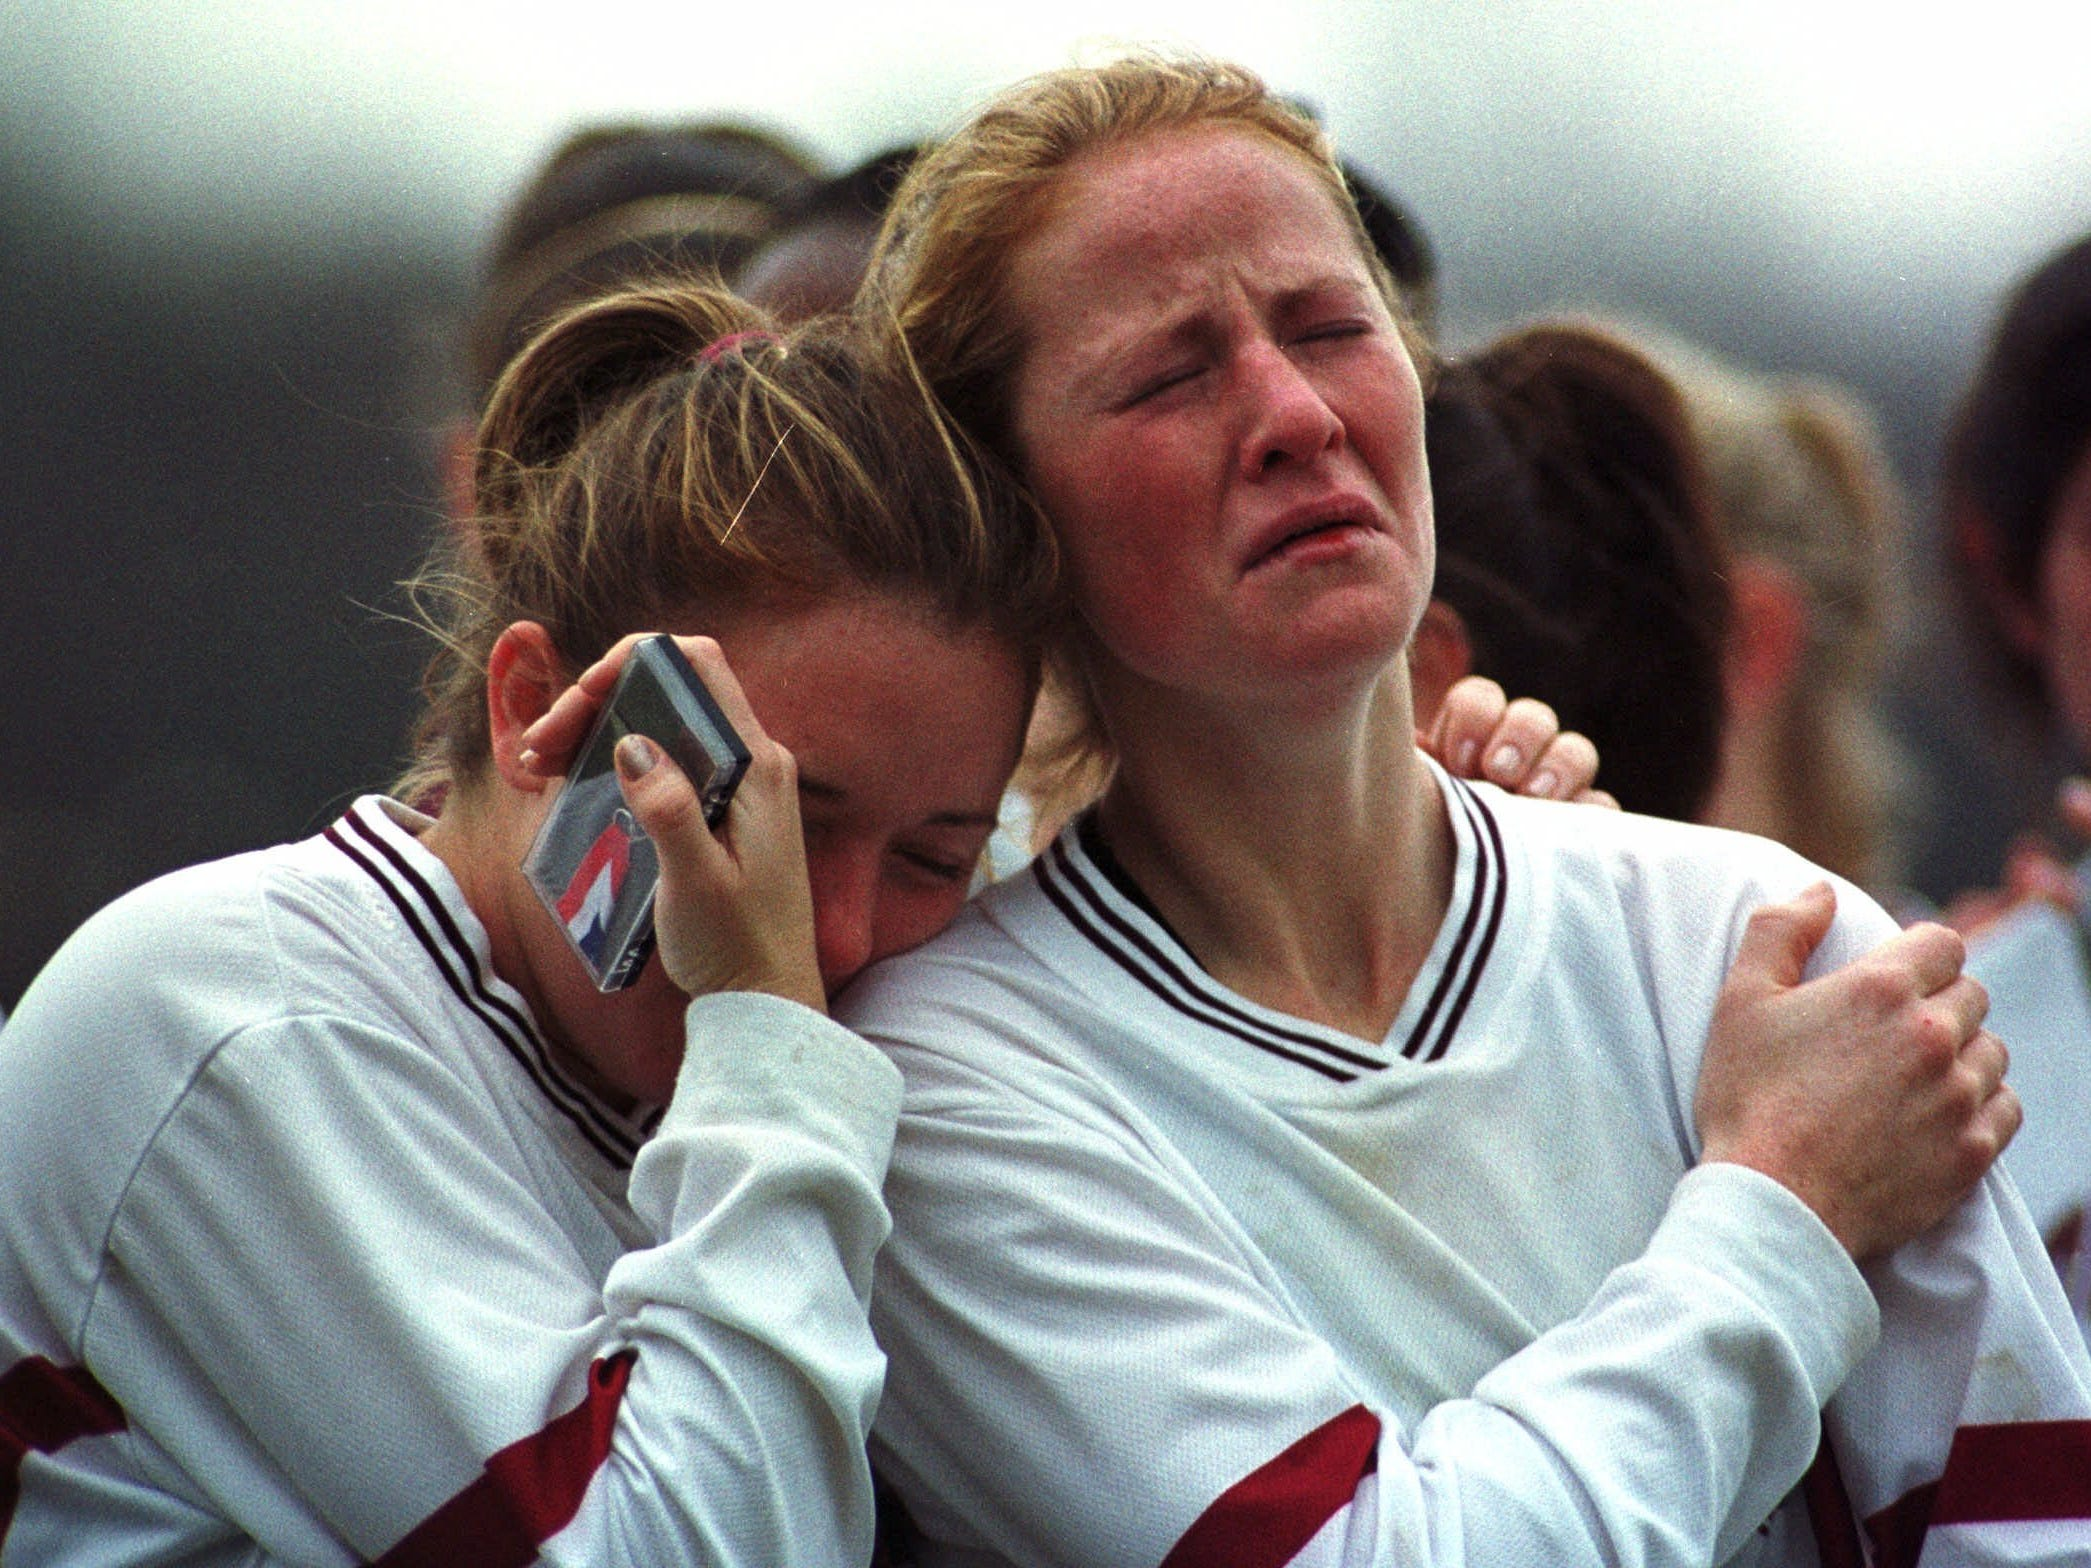 Courtney Pagani, left, leans on the shoulder of Aquinas teammate Jenica Schmidt, right, after the team's sudden death overtime loss to Westhill in the state Class B finals at Oneonta on  Nov. 20, 1999.